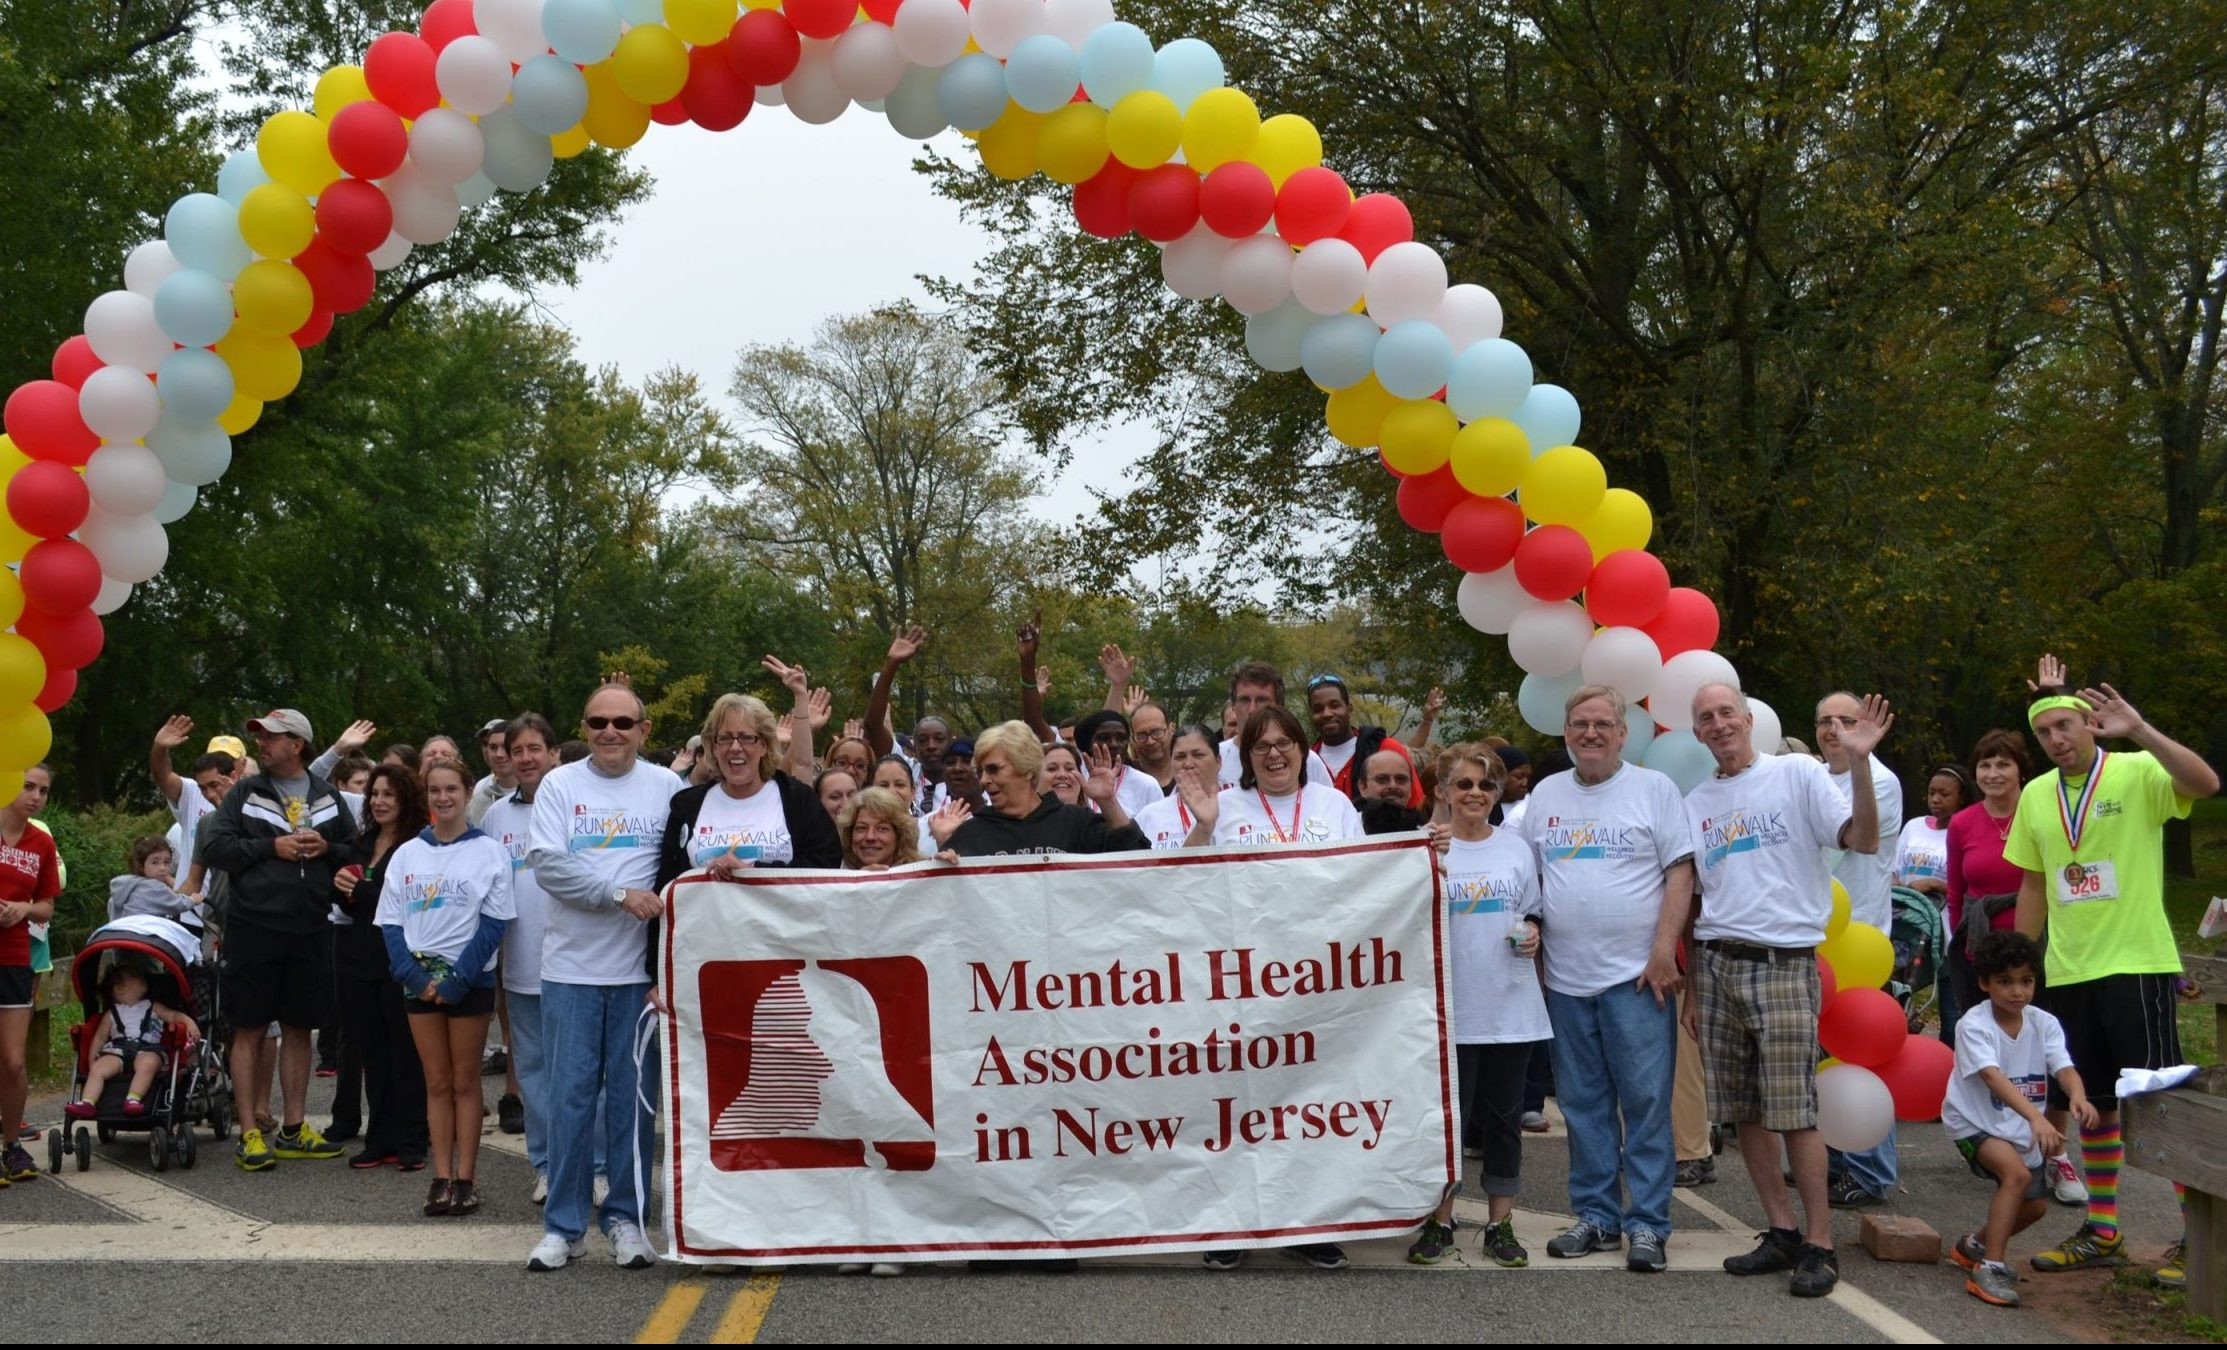 The Mental Health Association's 75th Anniversary